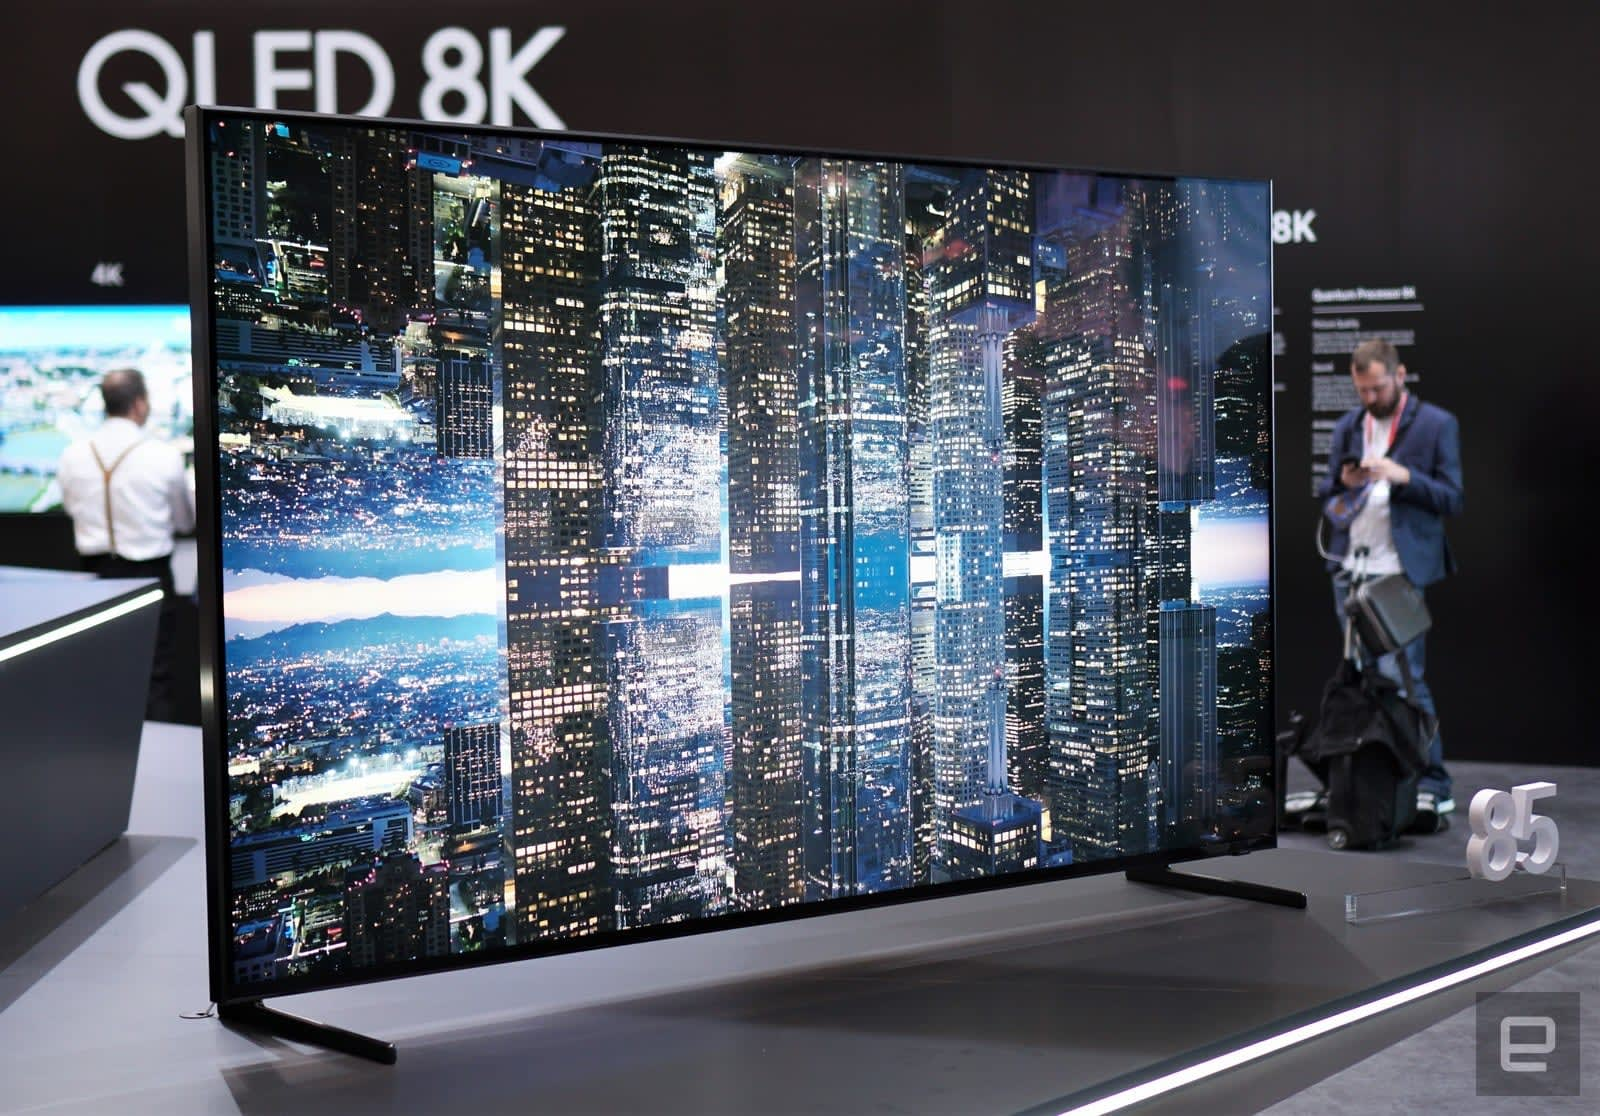 Samsung brings its HDR10+ tech to 8K TVs